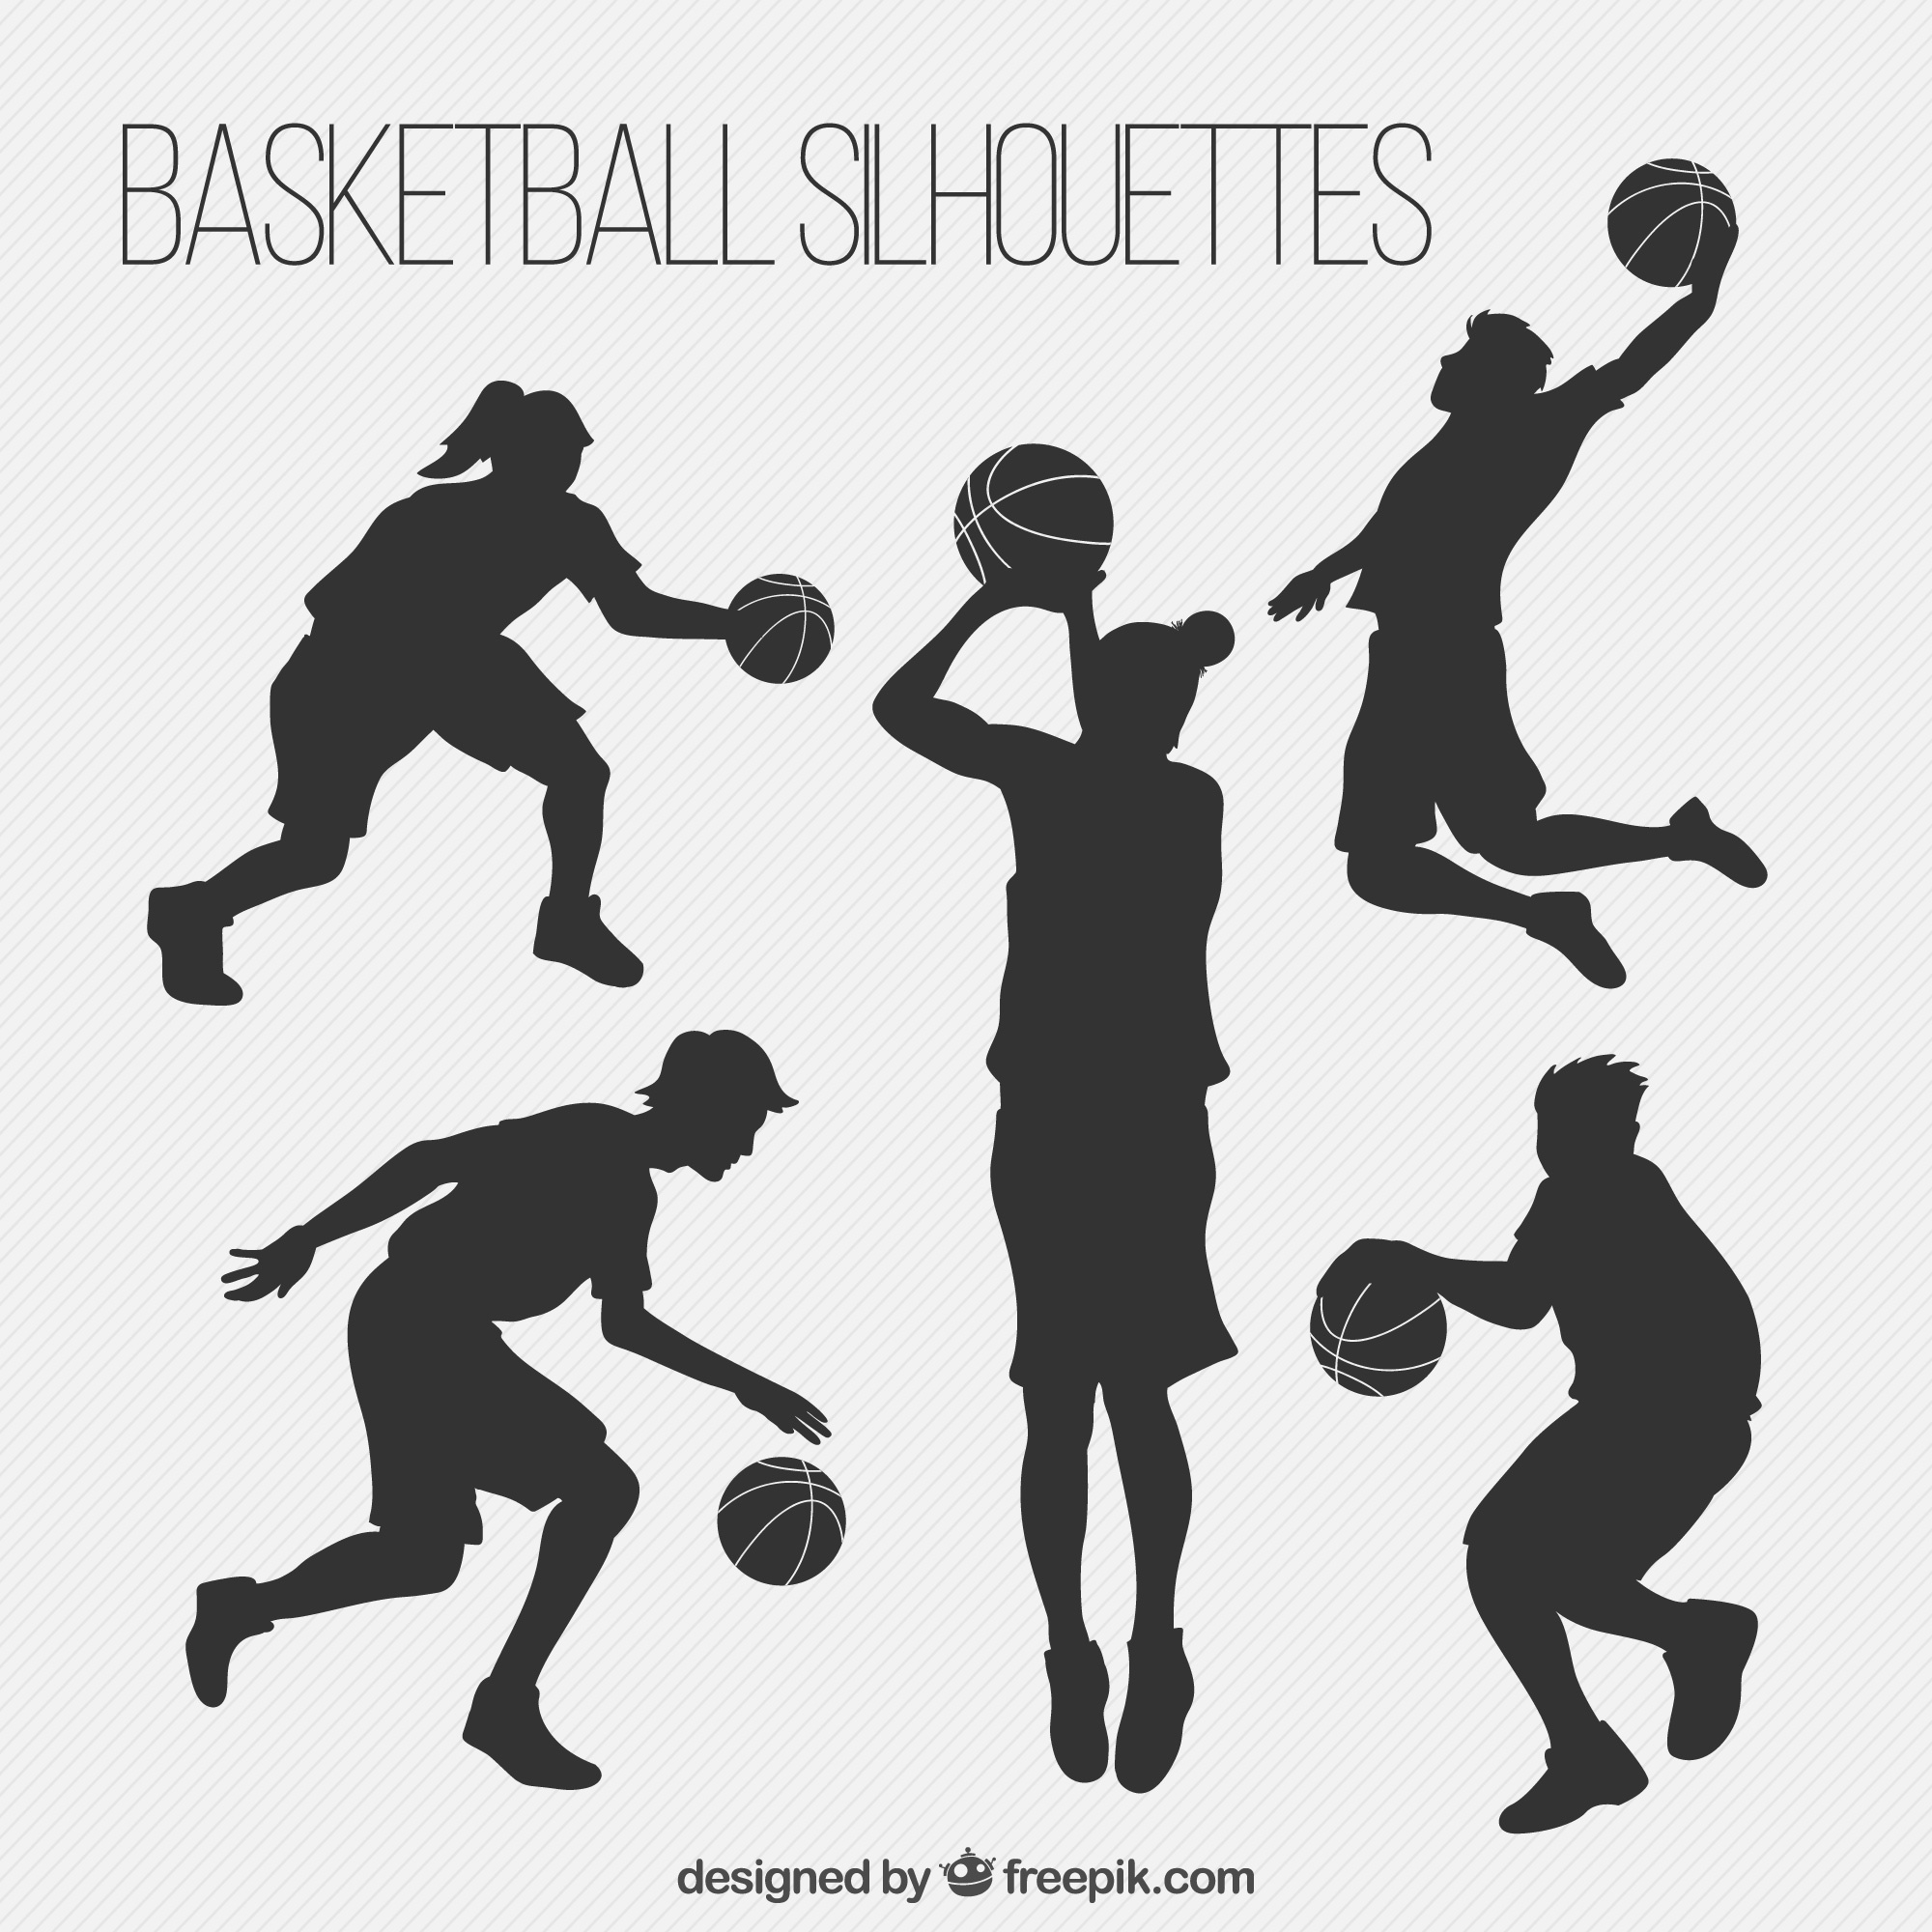 Pack of basketball players silhouettes